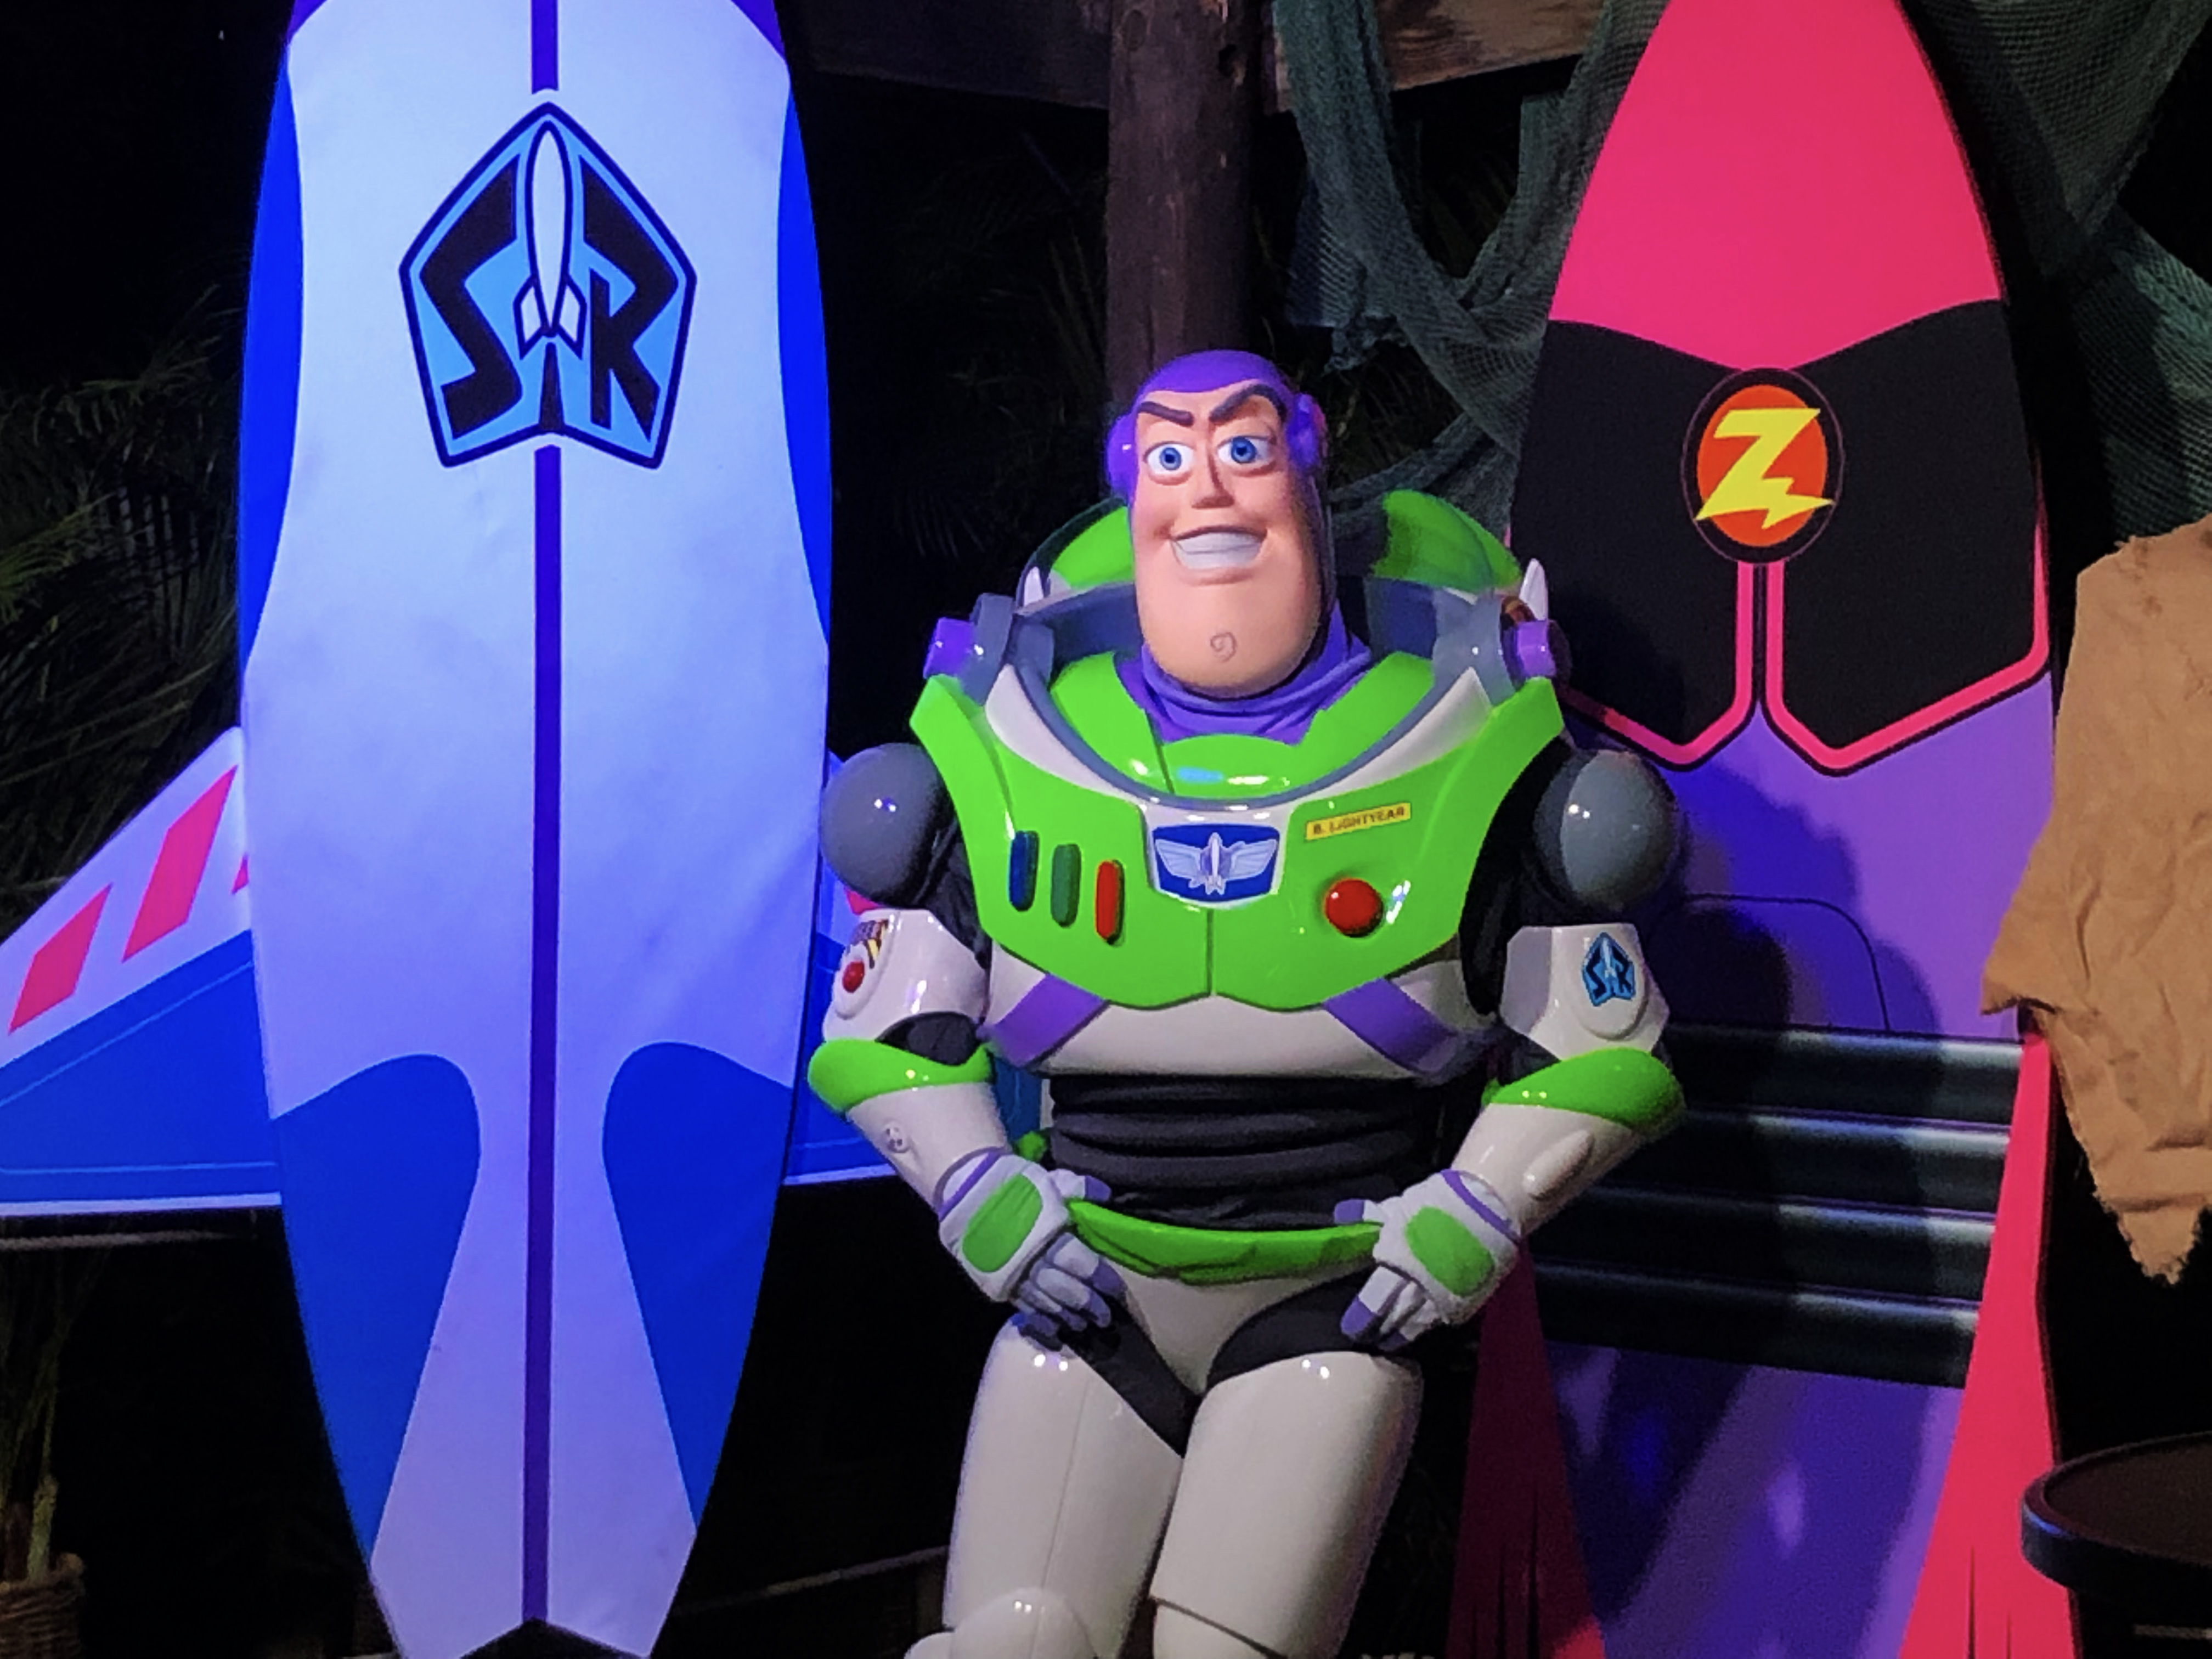 Toy Story character, Buzz Lightyear, stands with his hands on his waist while in front of Star Command and Zurg-inspired surfboards. He waits for the next guest for a meet and greet photo session during night at Disney's Typhoon Lagoon.